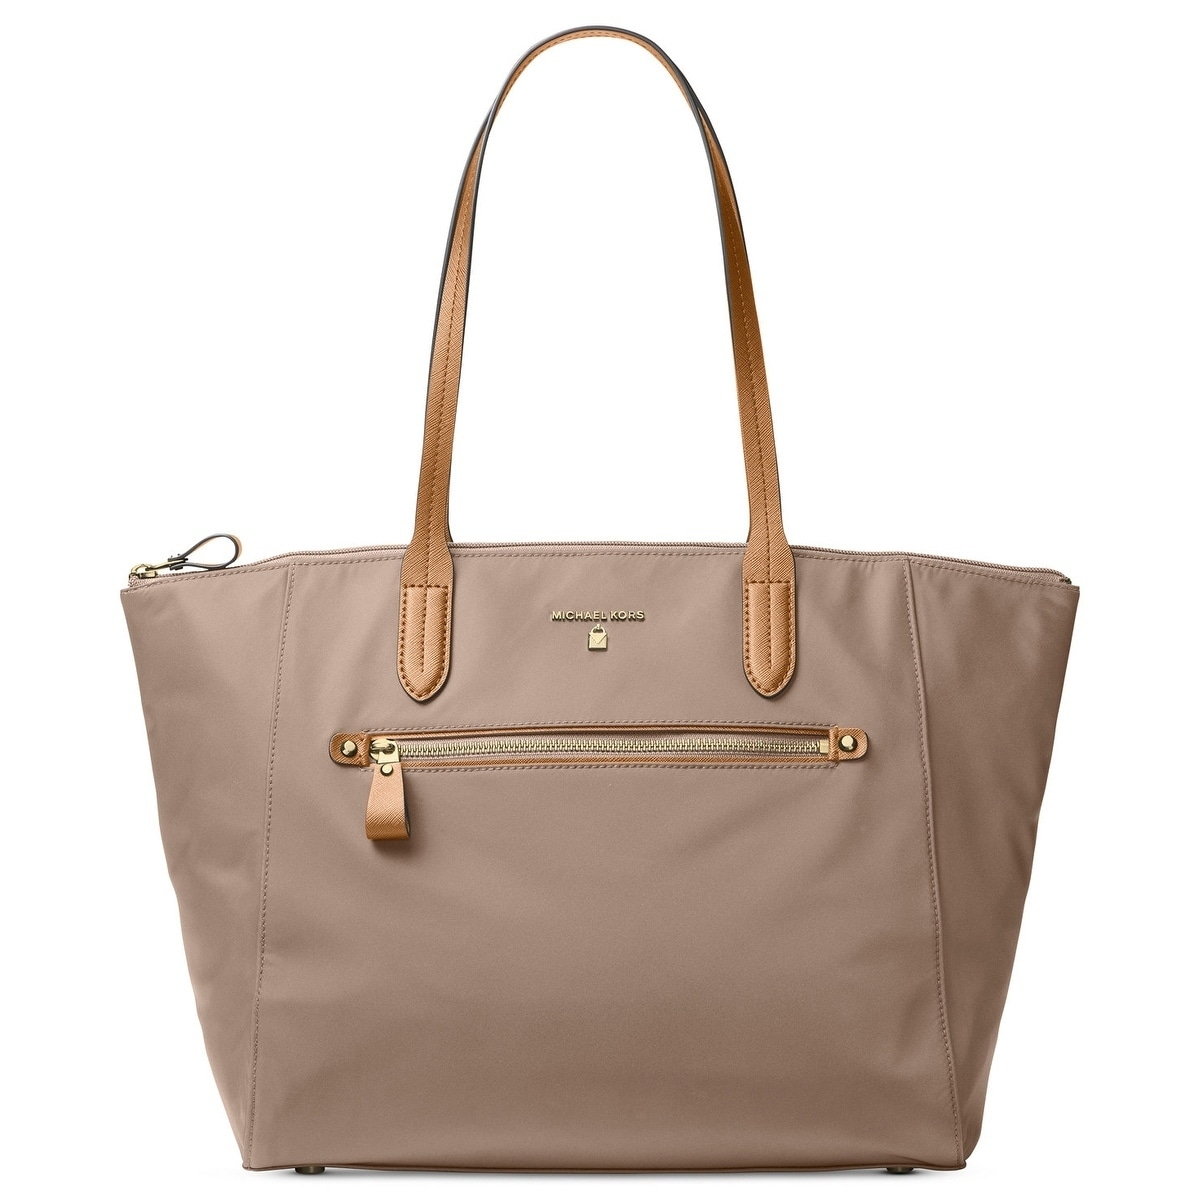 10b0f781e1ab Shop Michael Michael Kors Kelsey Large Top-Zip Tote - Tan Beige - Free  Shipping Today - Overstock - 18041296